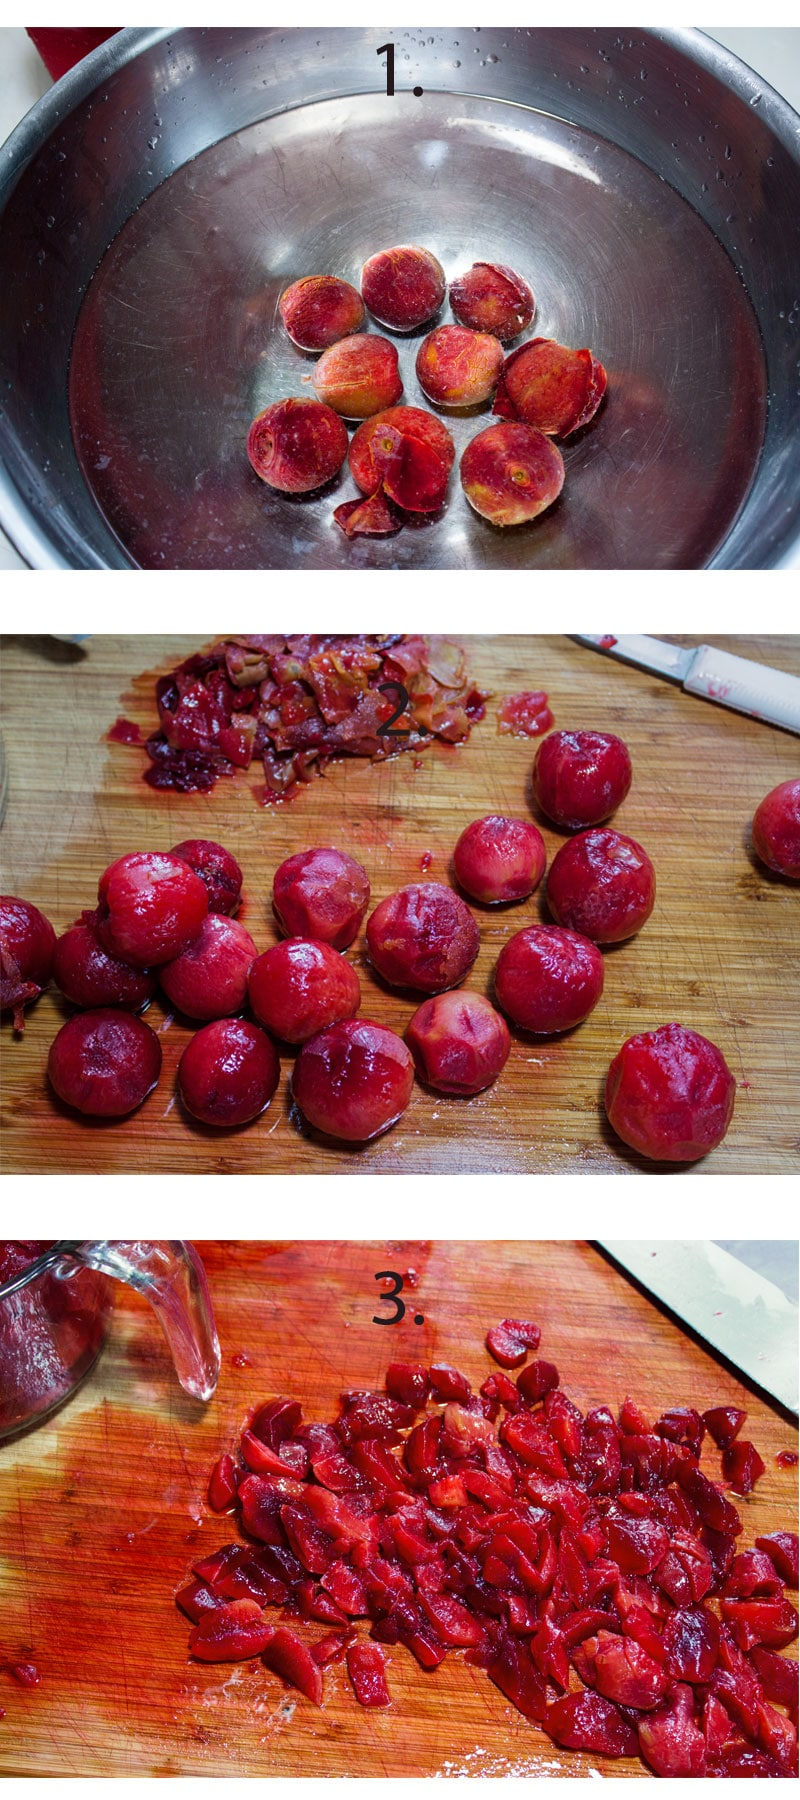 Blanching plums. Peeling plums. Chopped plums on board.